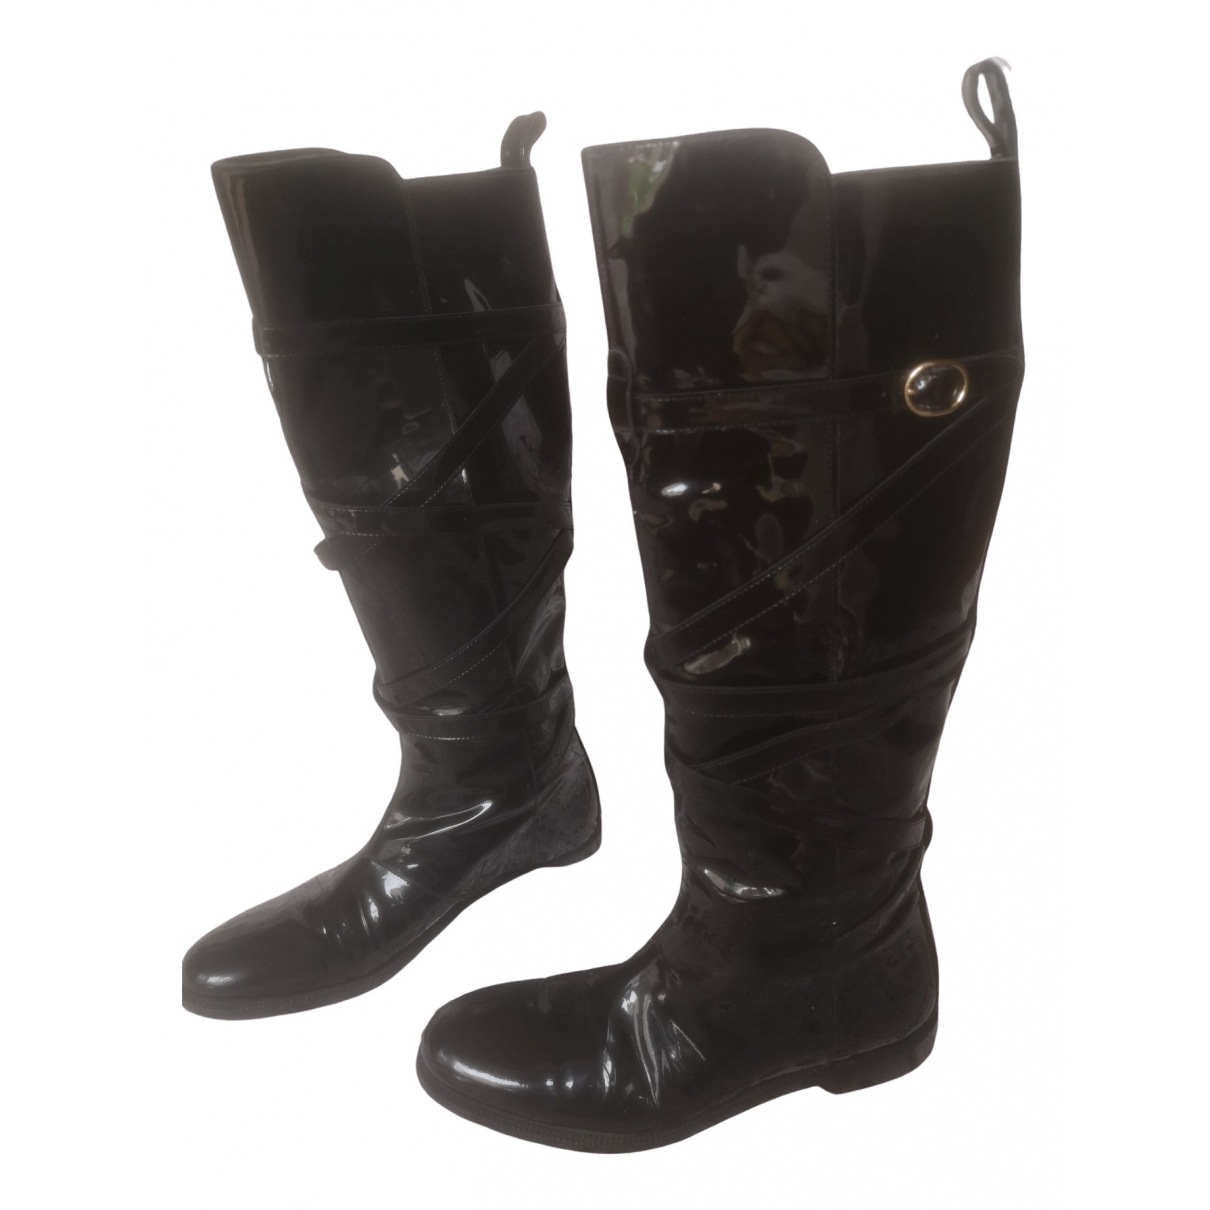 Yves Saint Laurent \N Black Patent leather Boots for Women 34.5 IT